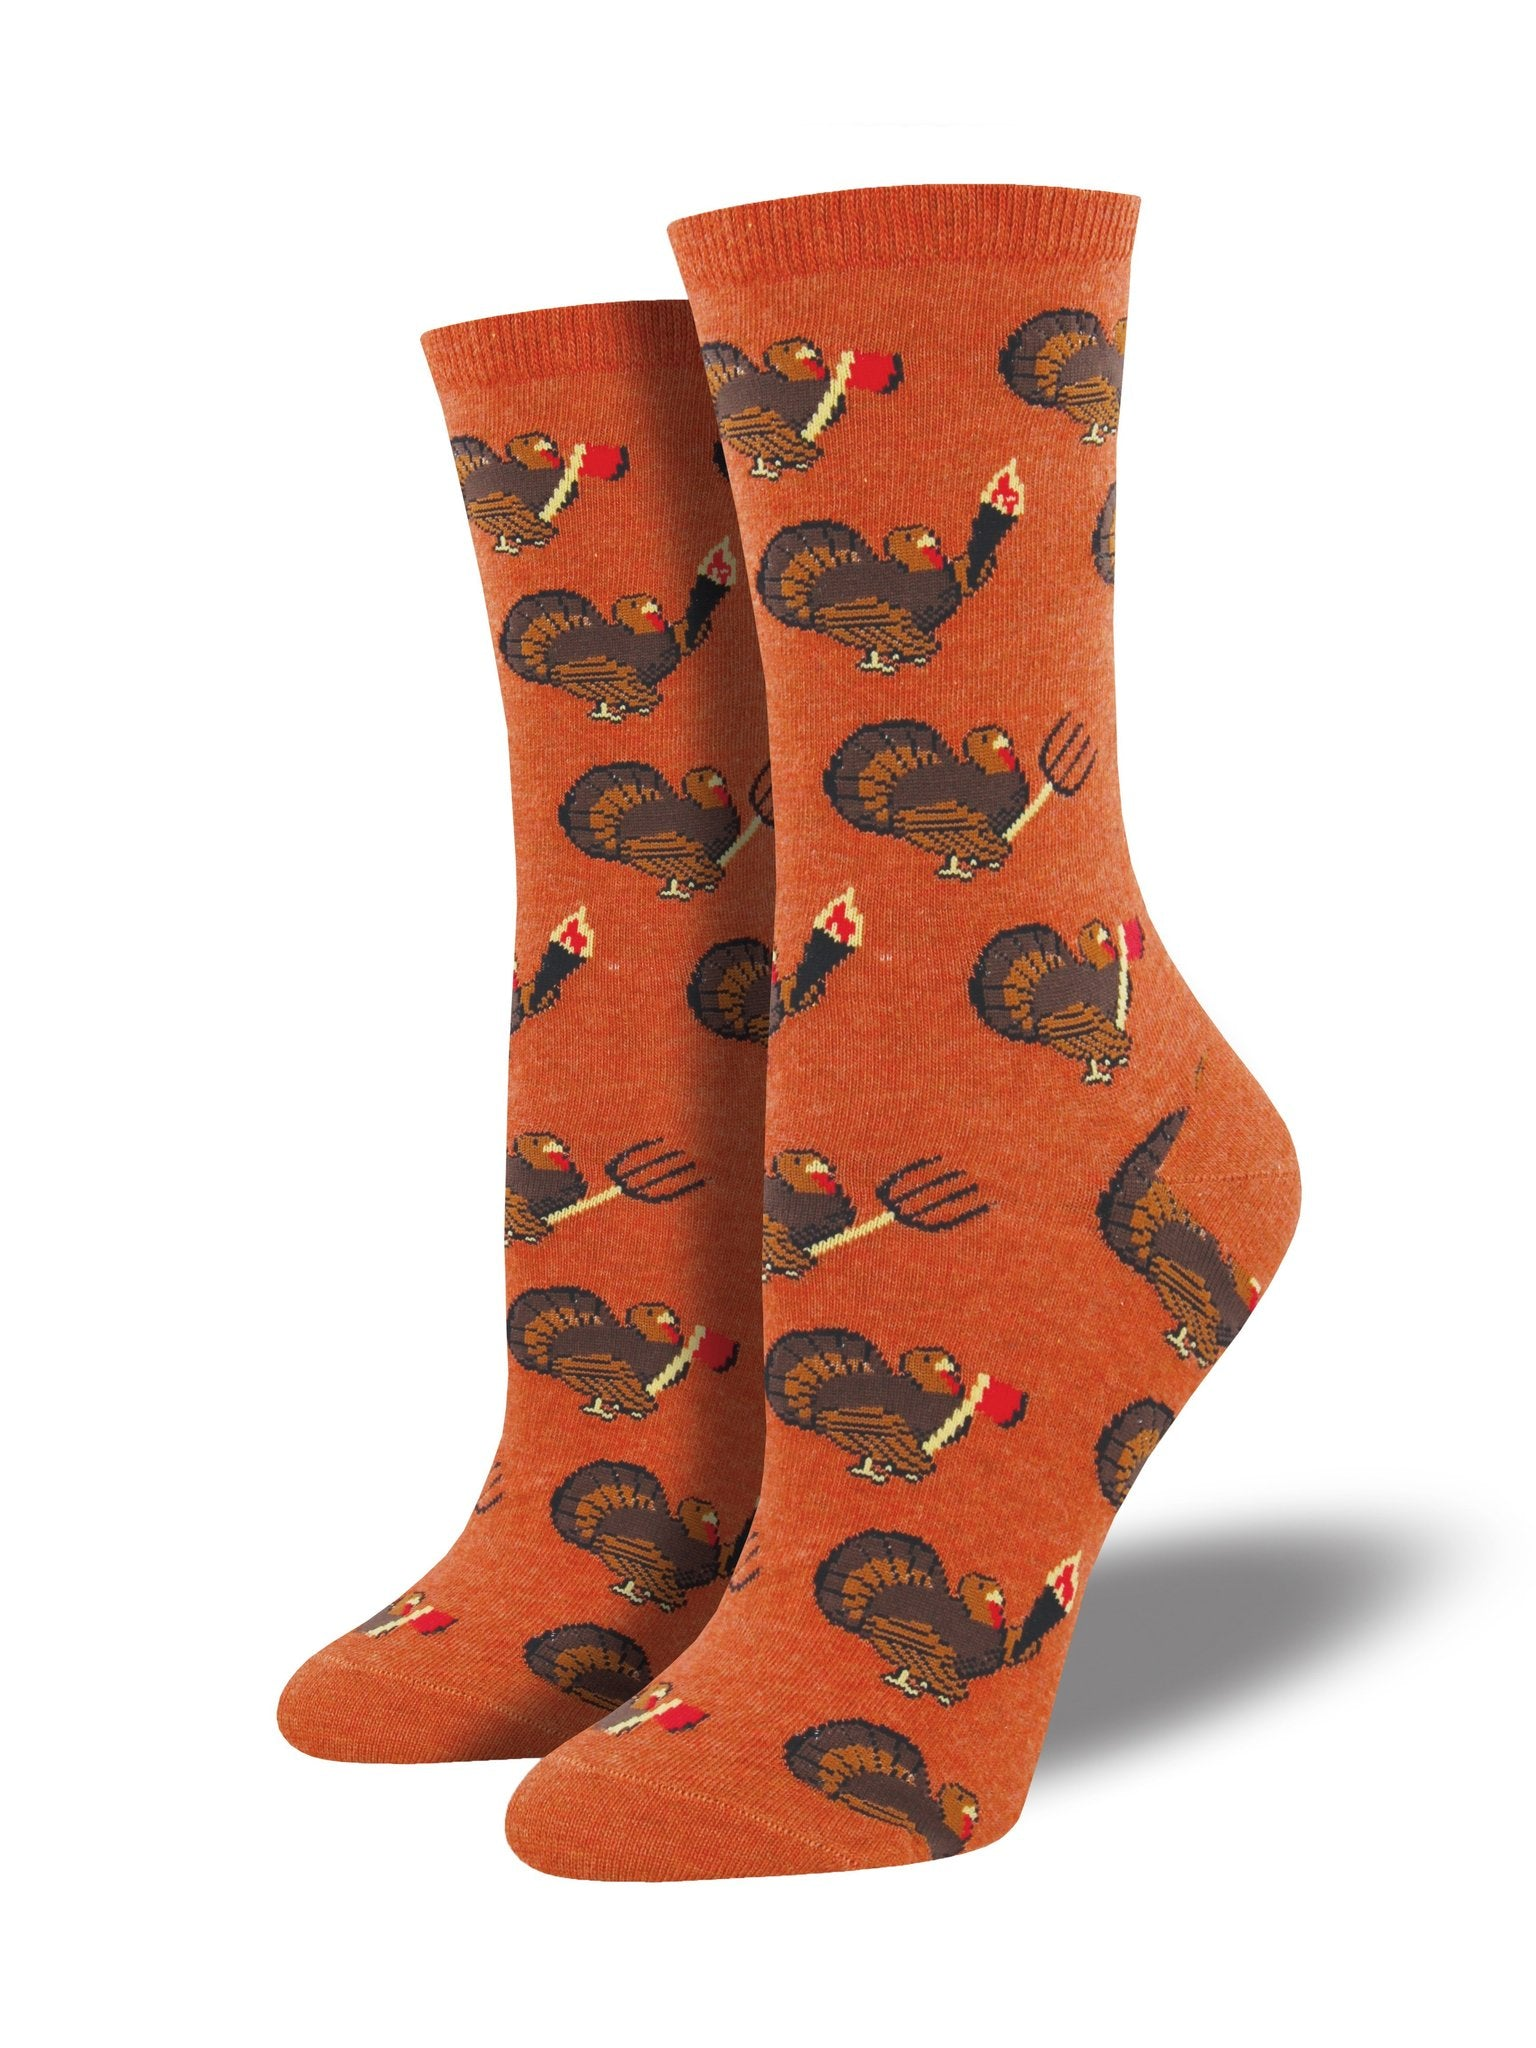 Turkey Revolution Women's Socks